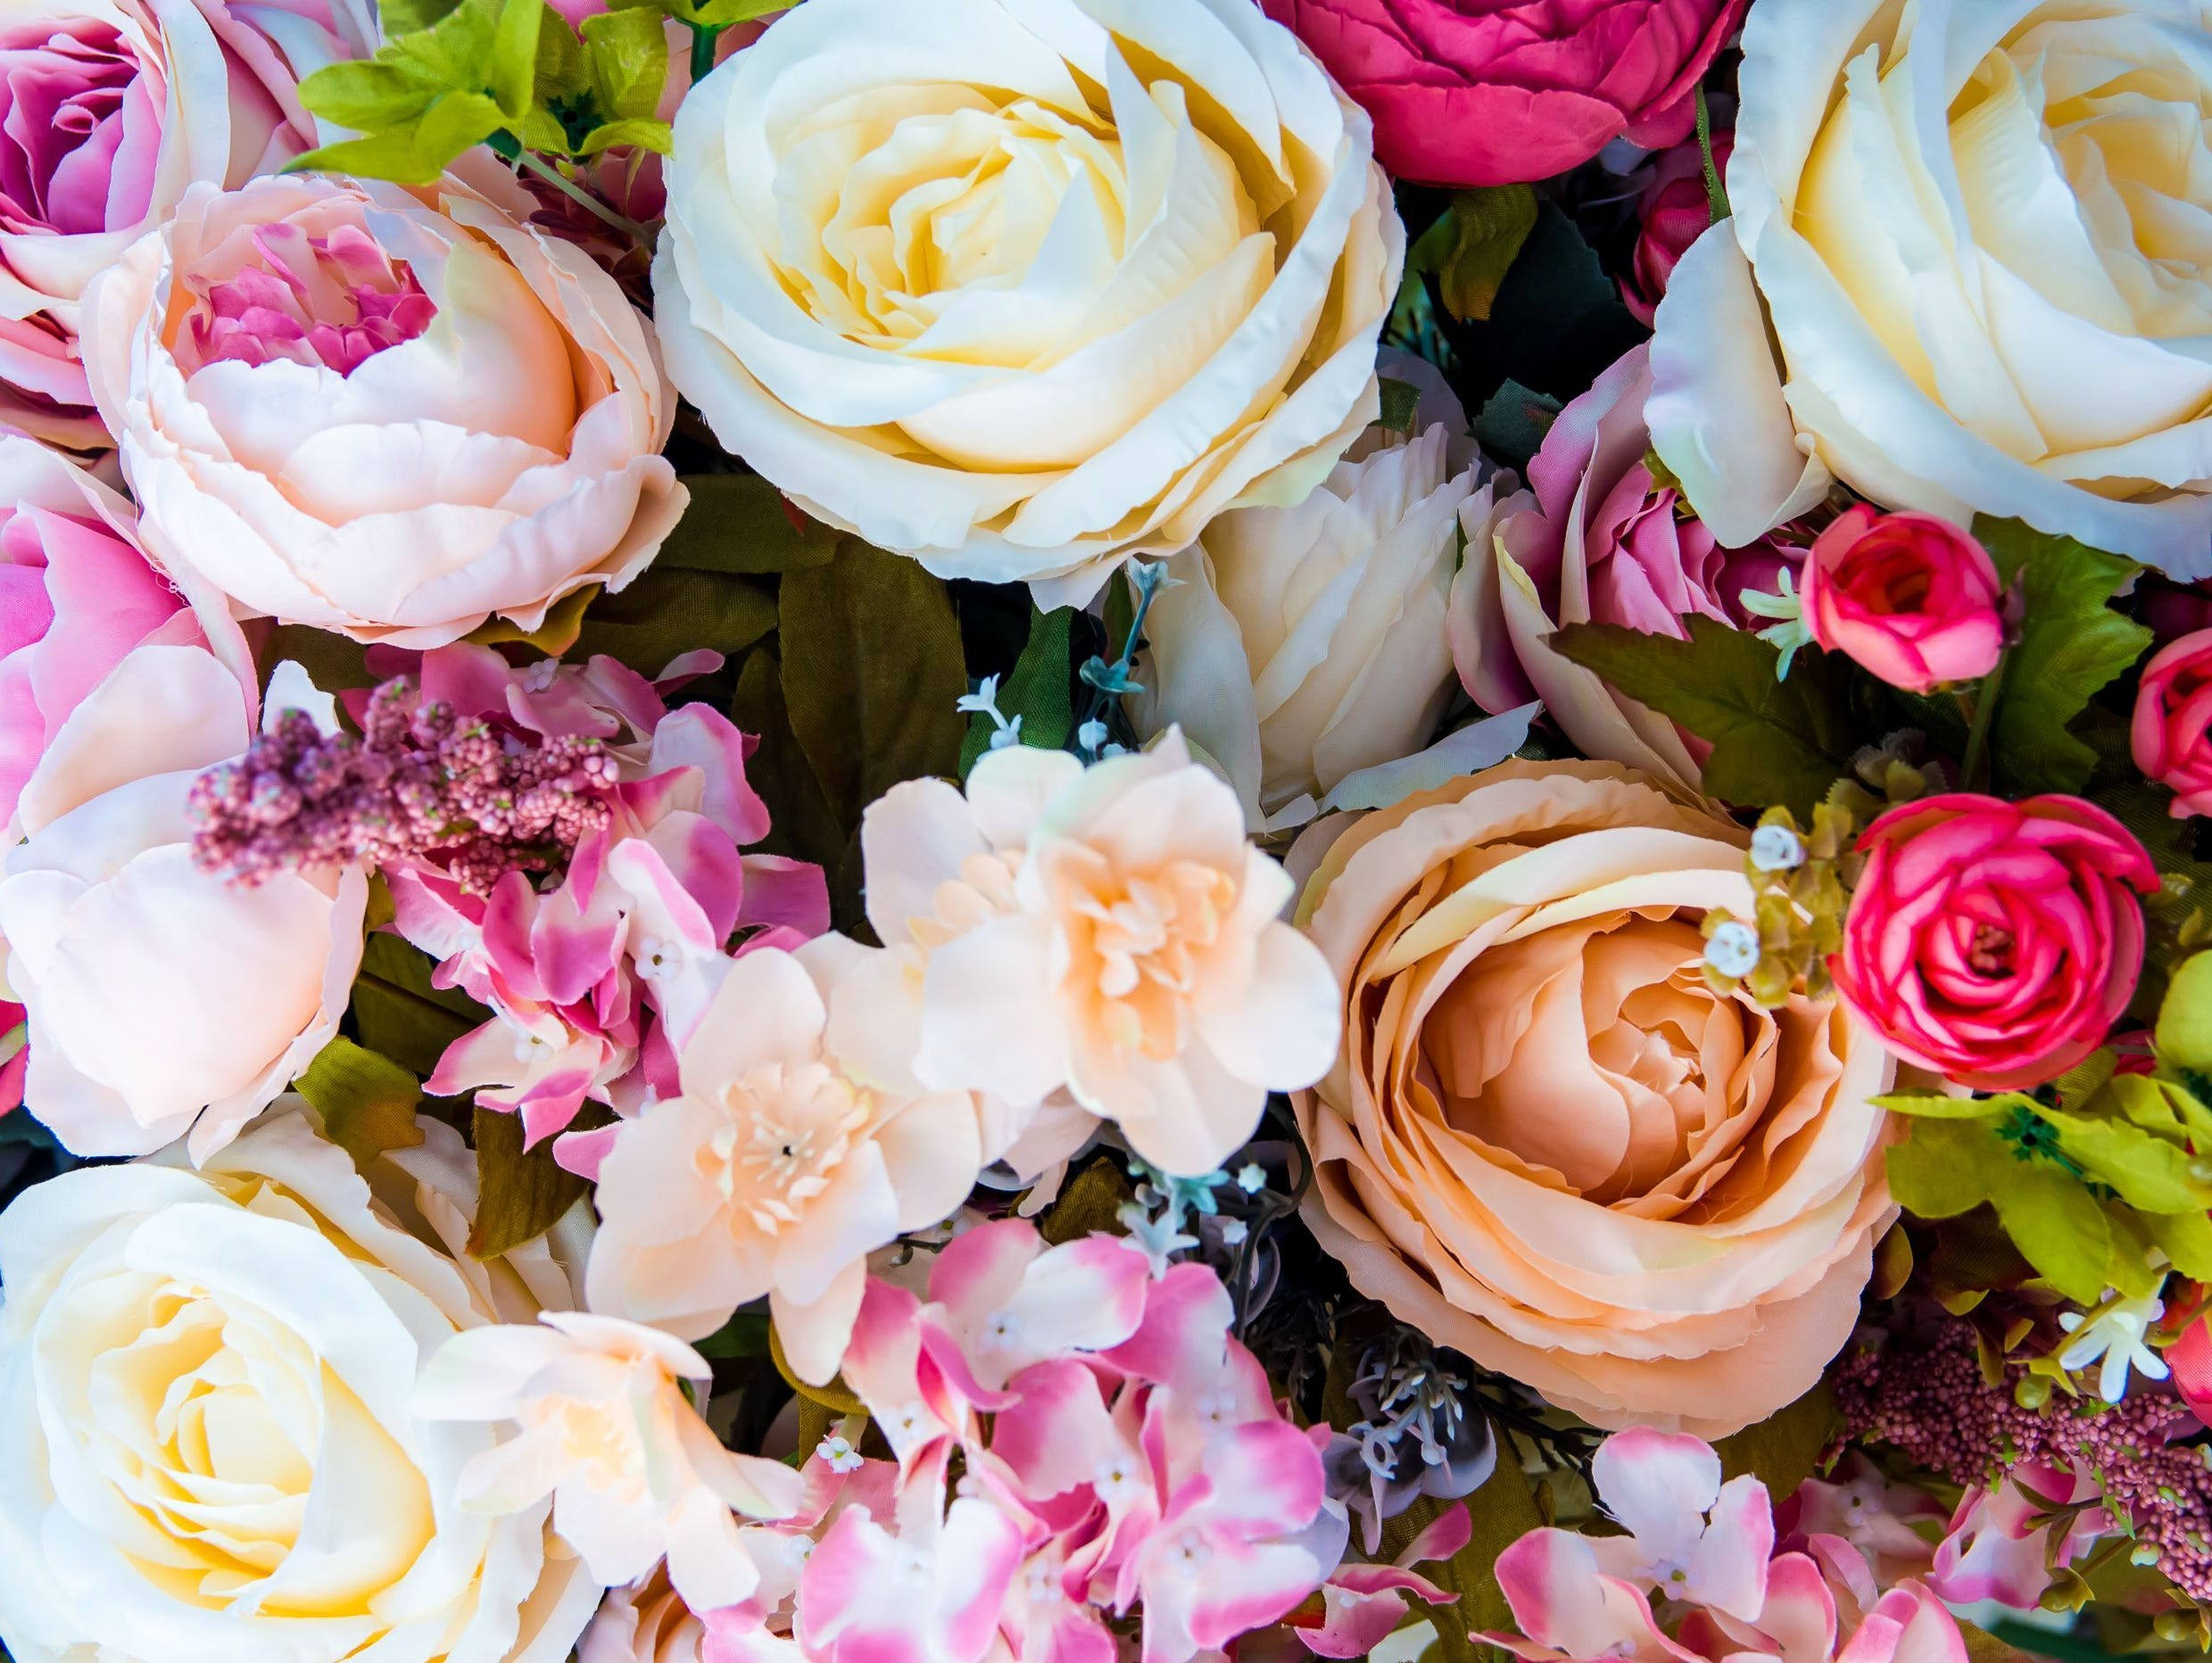 Discover one-of-a-kind floral arrangements for all the special someones in your life.